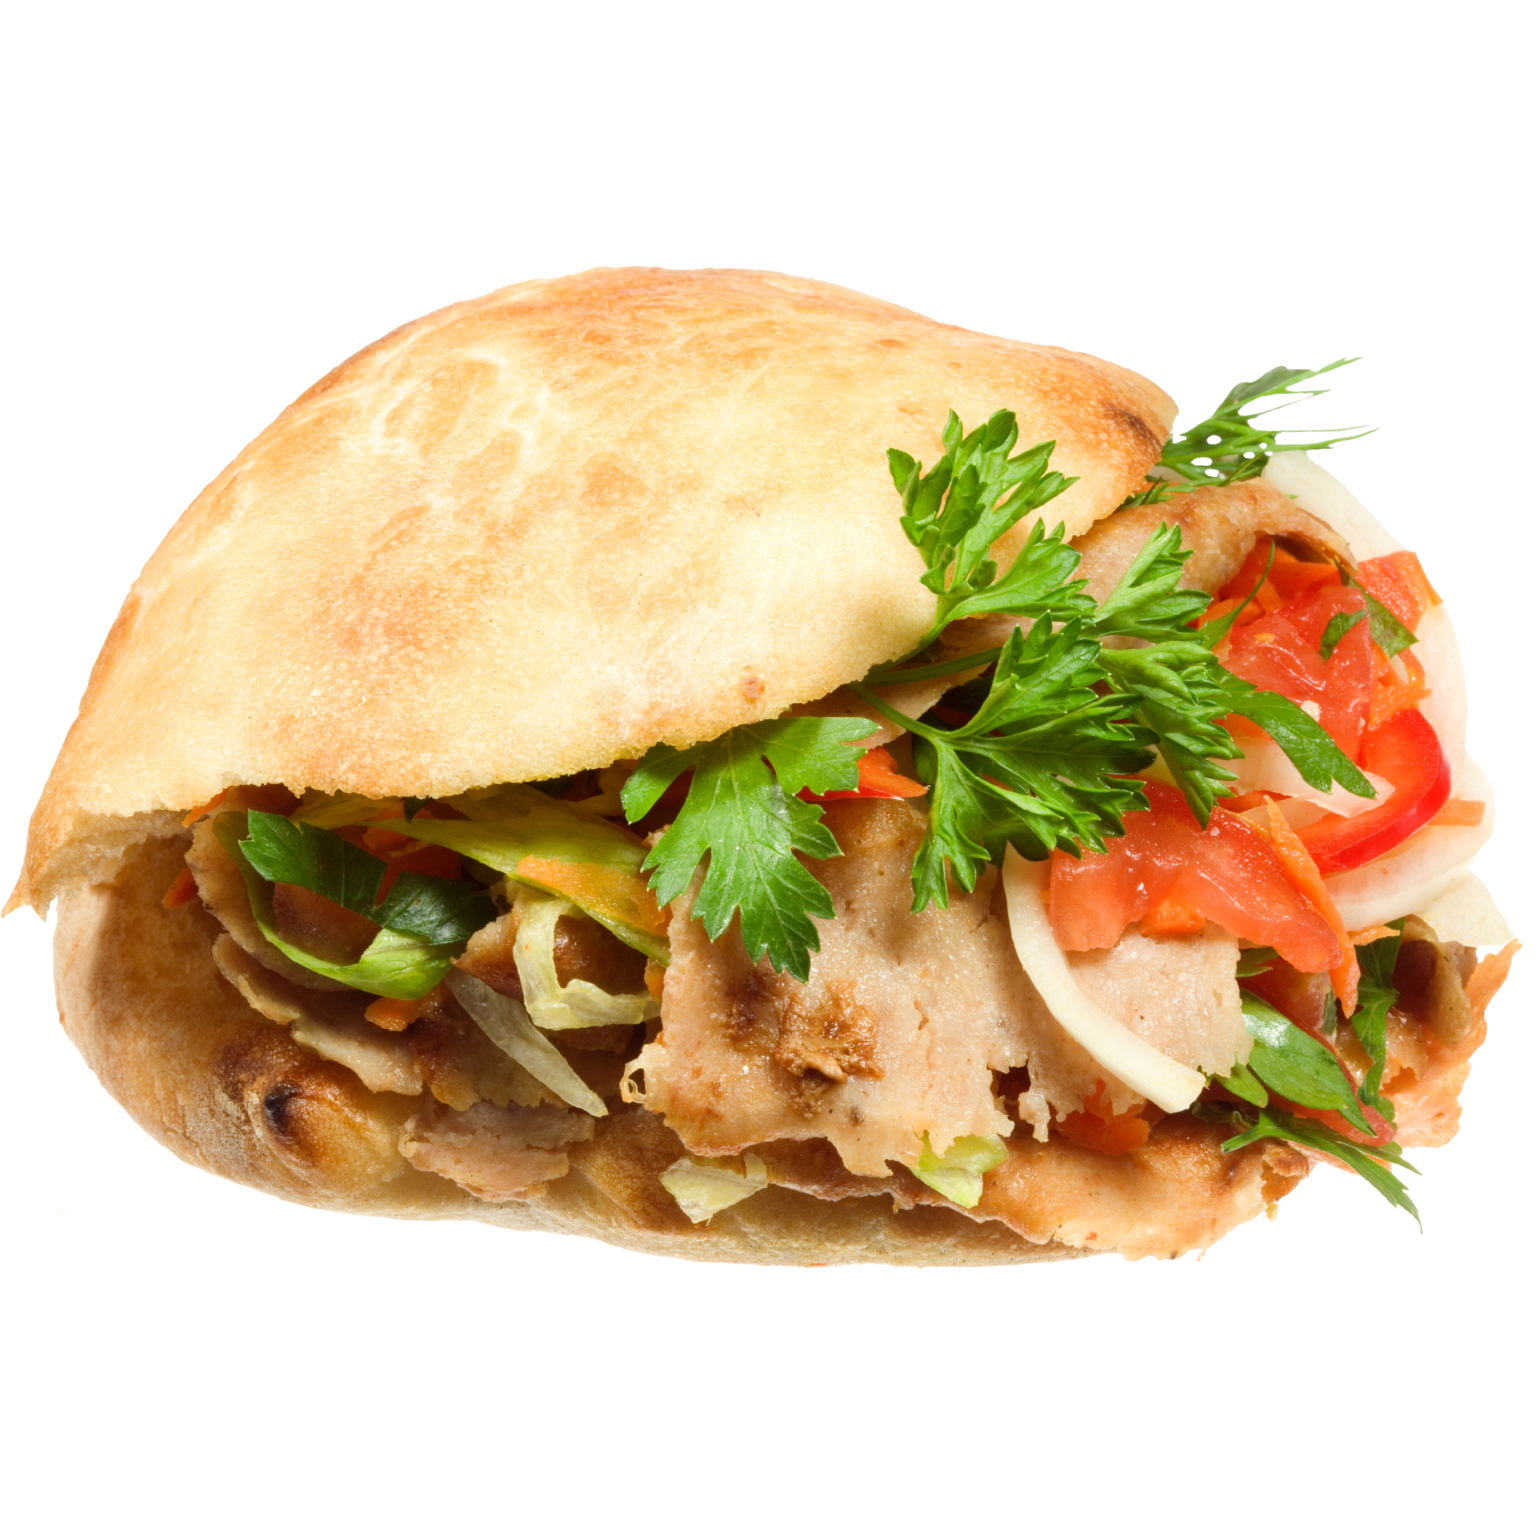 Chicken pita with fries png. Doner kebab wrap french